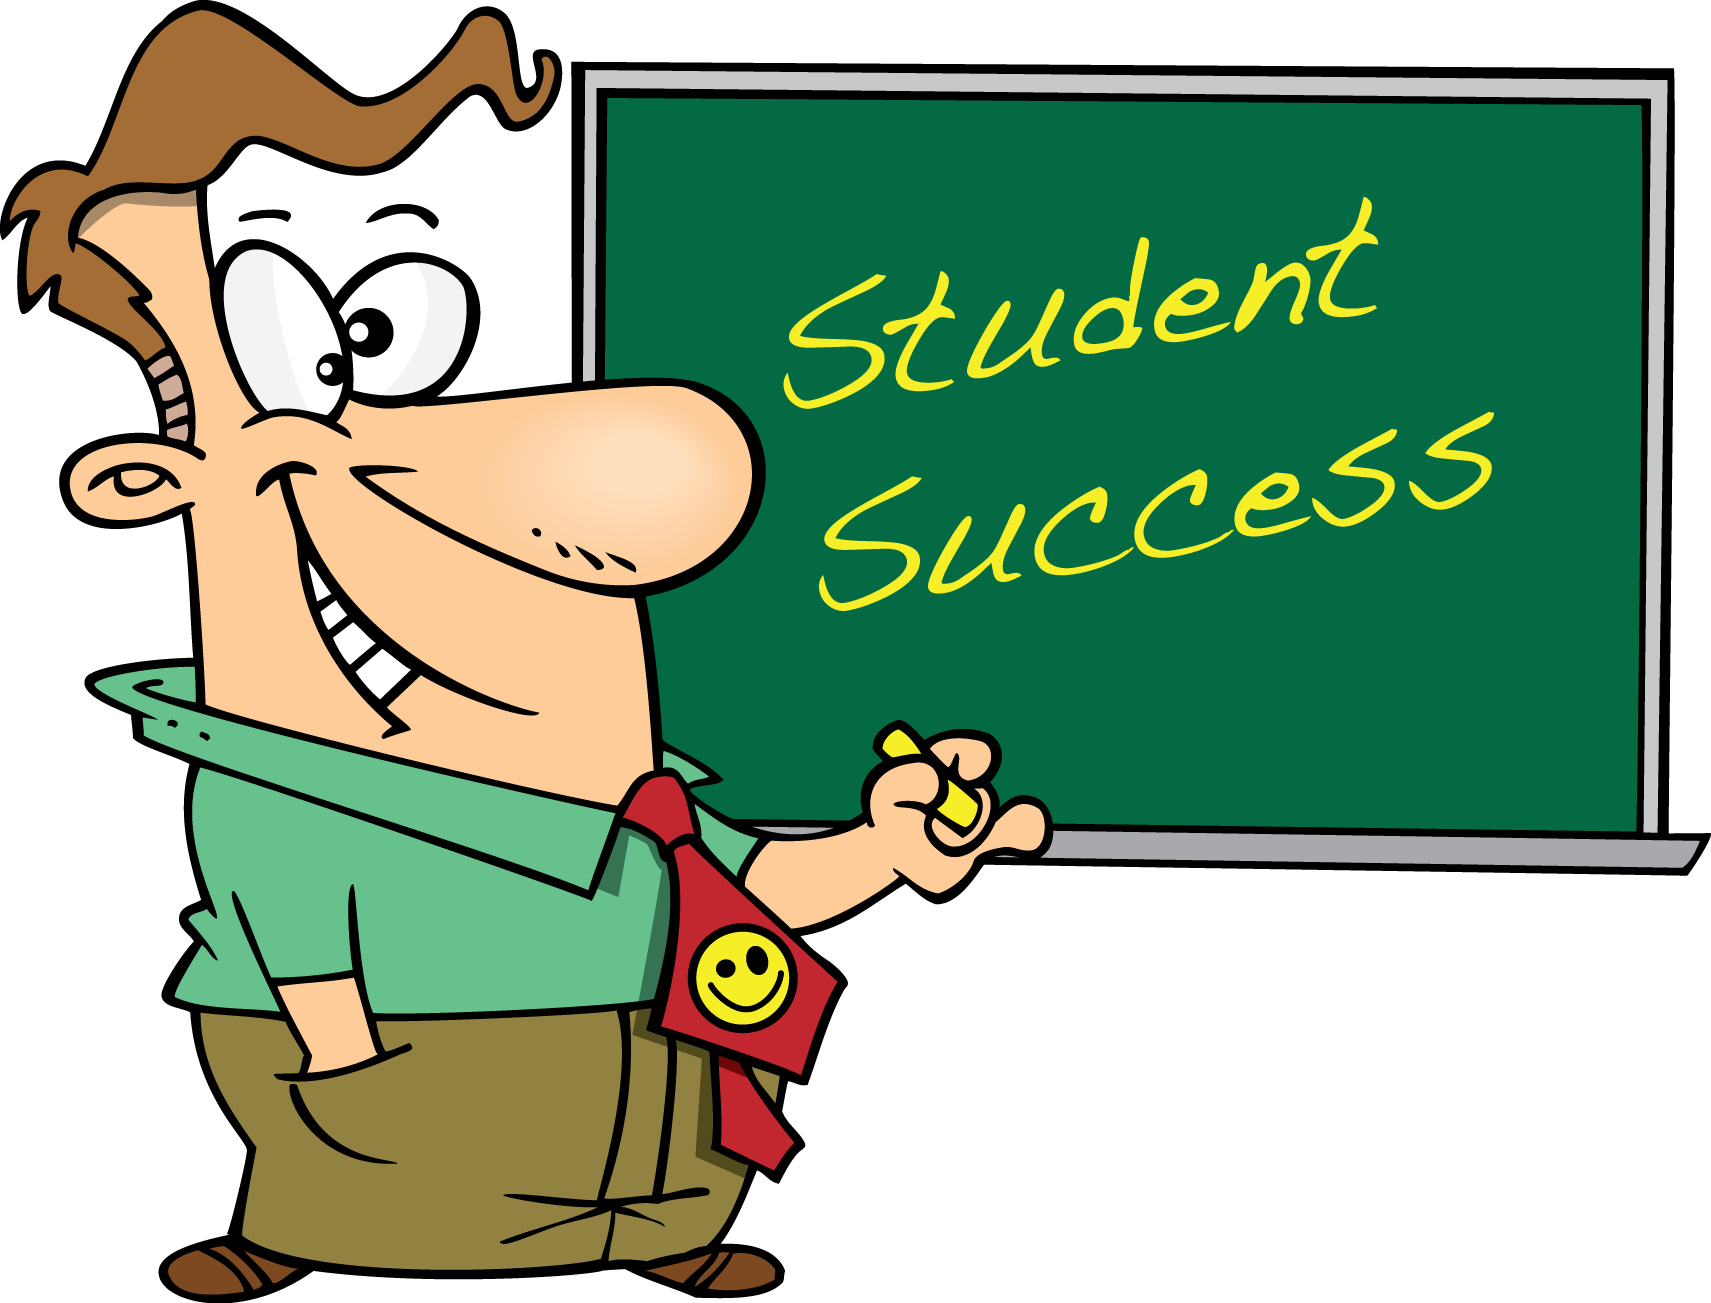 Student clipart problem solving. Feedback cliparts free download